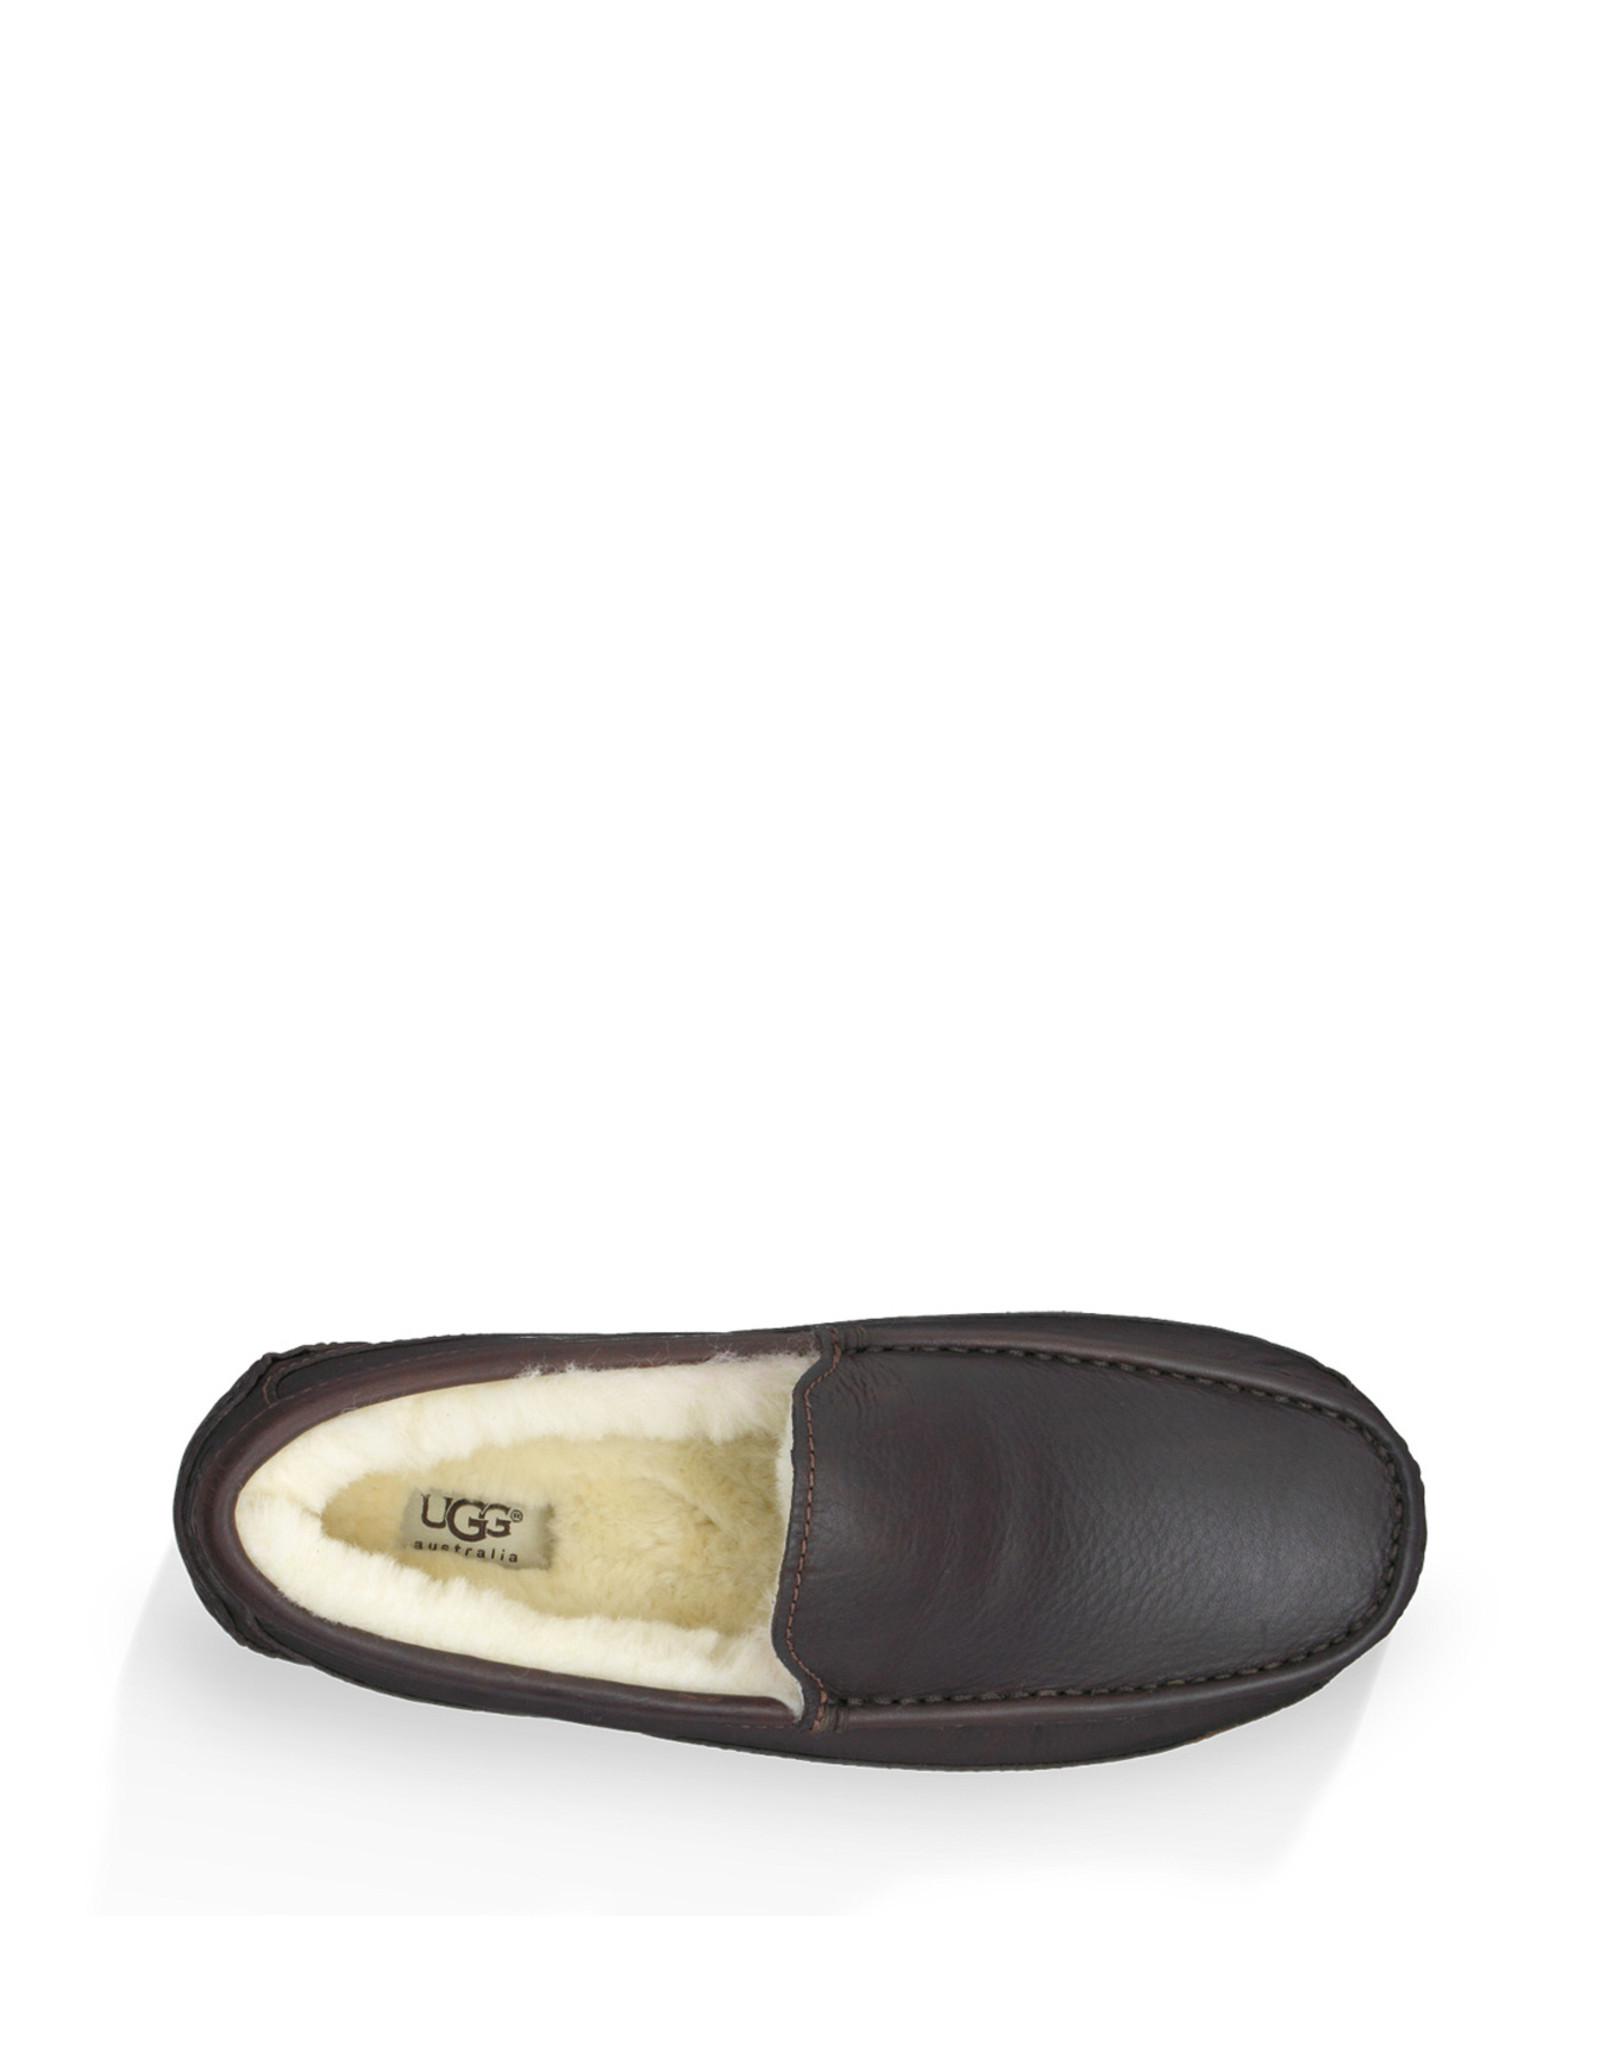 UGG MEN'S ASCOT SLIPPER WIDE-CHINA TEA